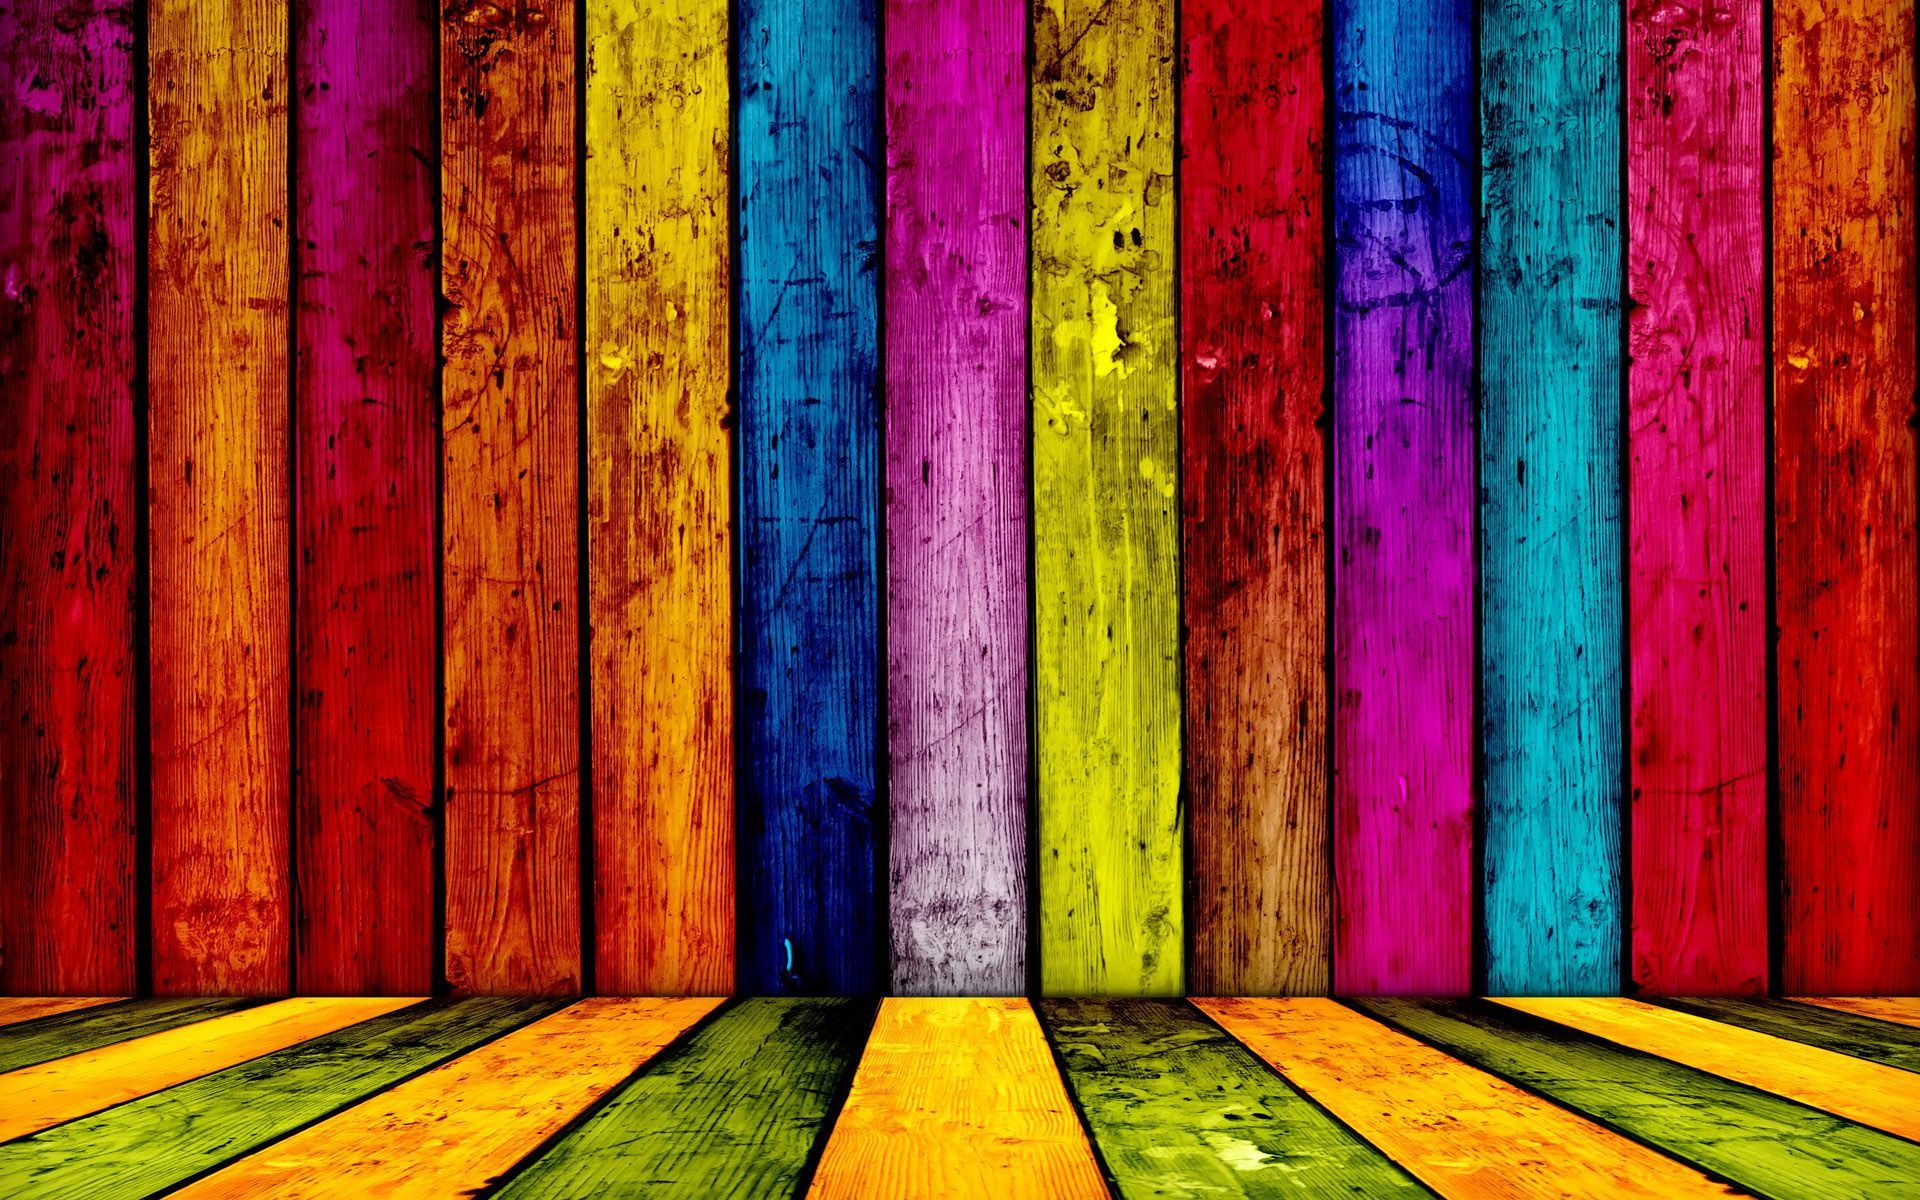 Hd wallpaper colorful - Wallpapers Hd Colorfull